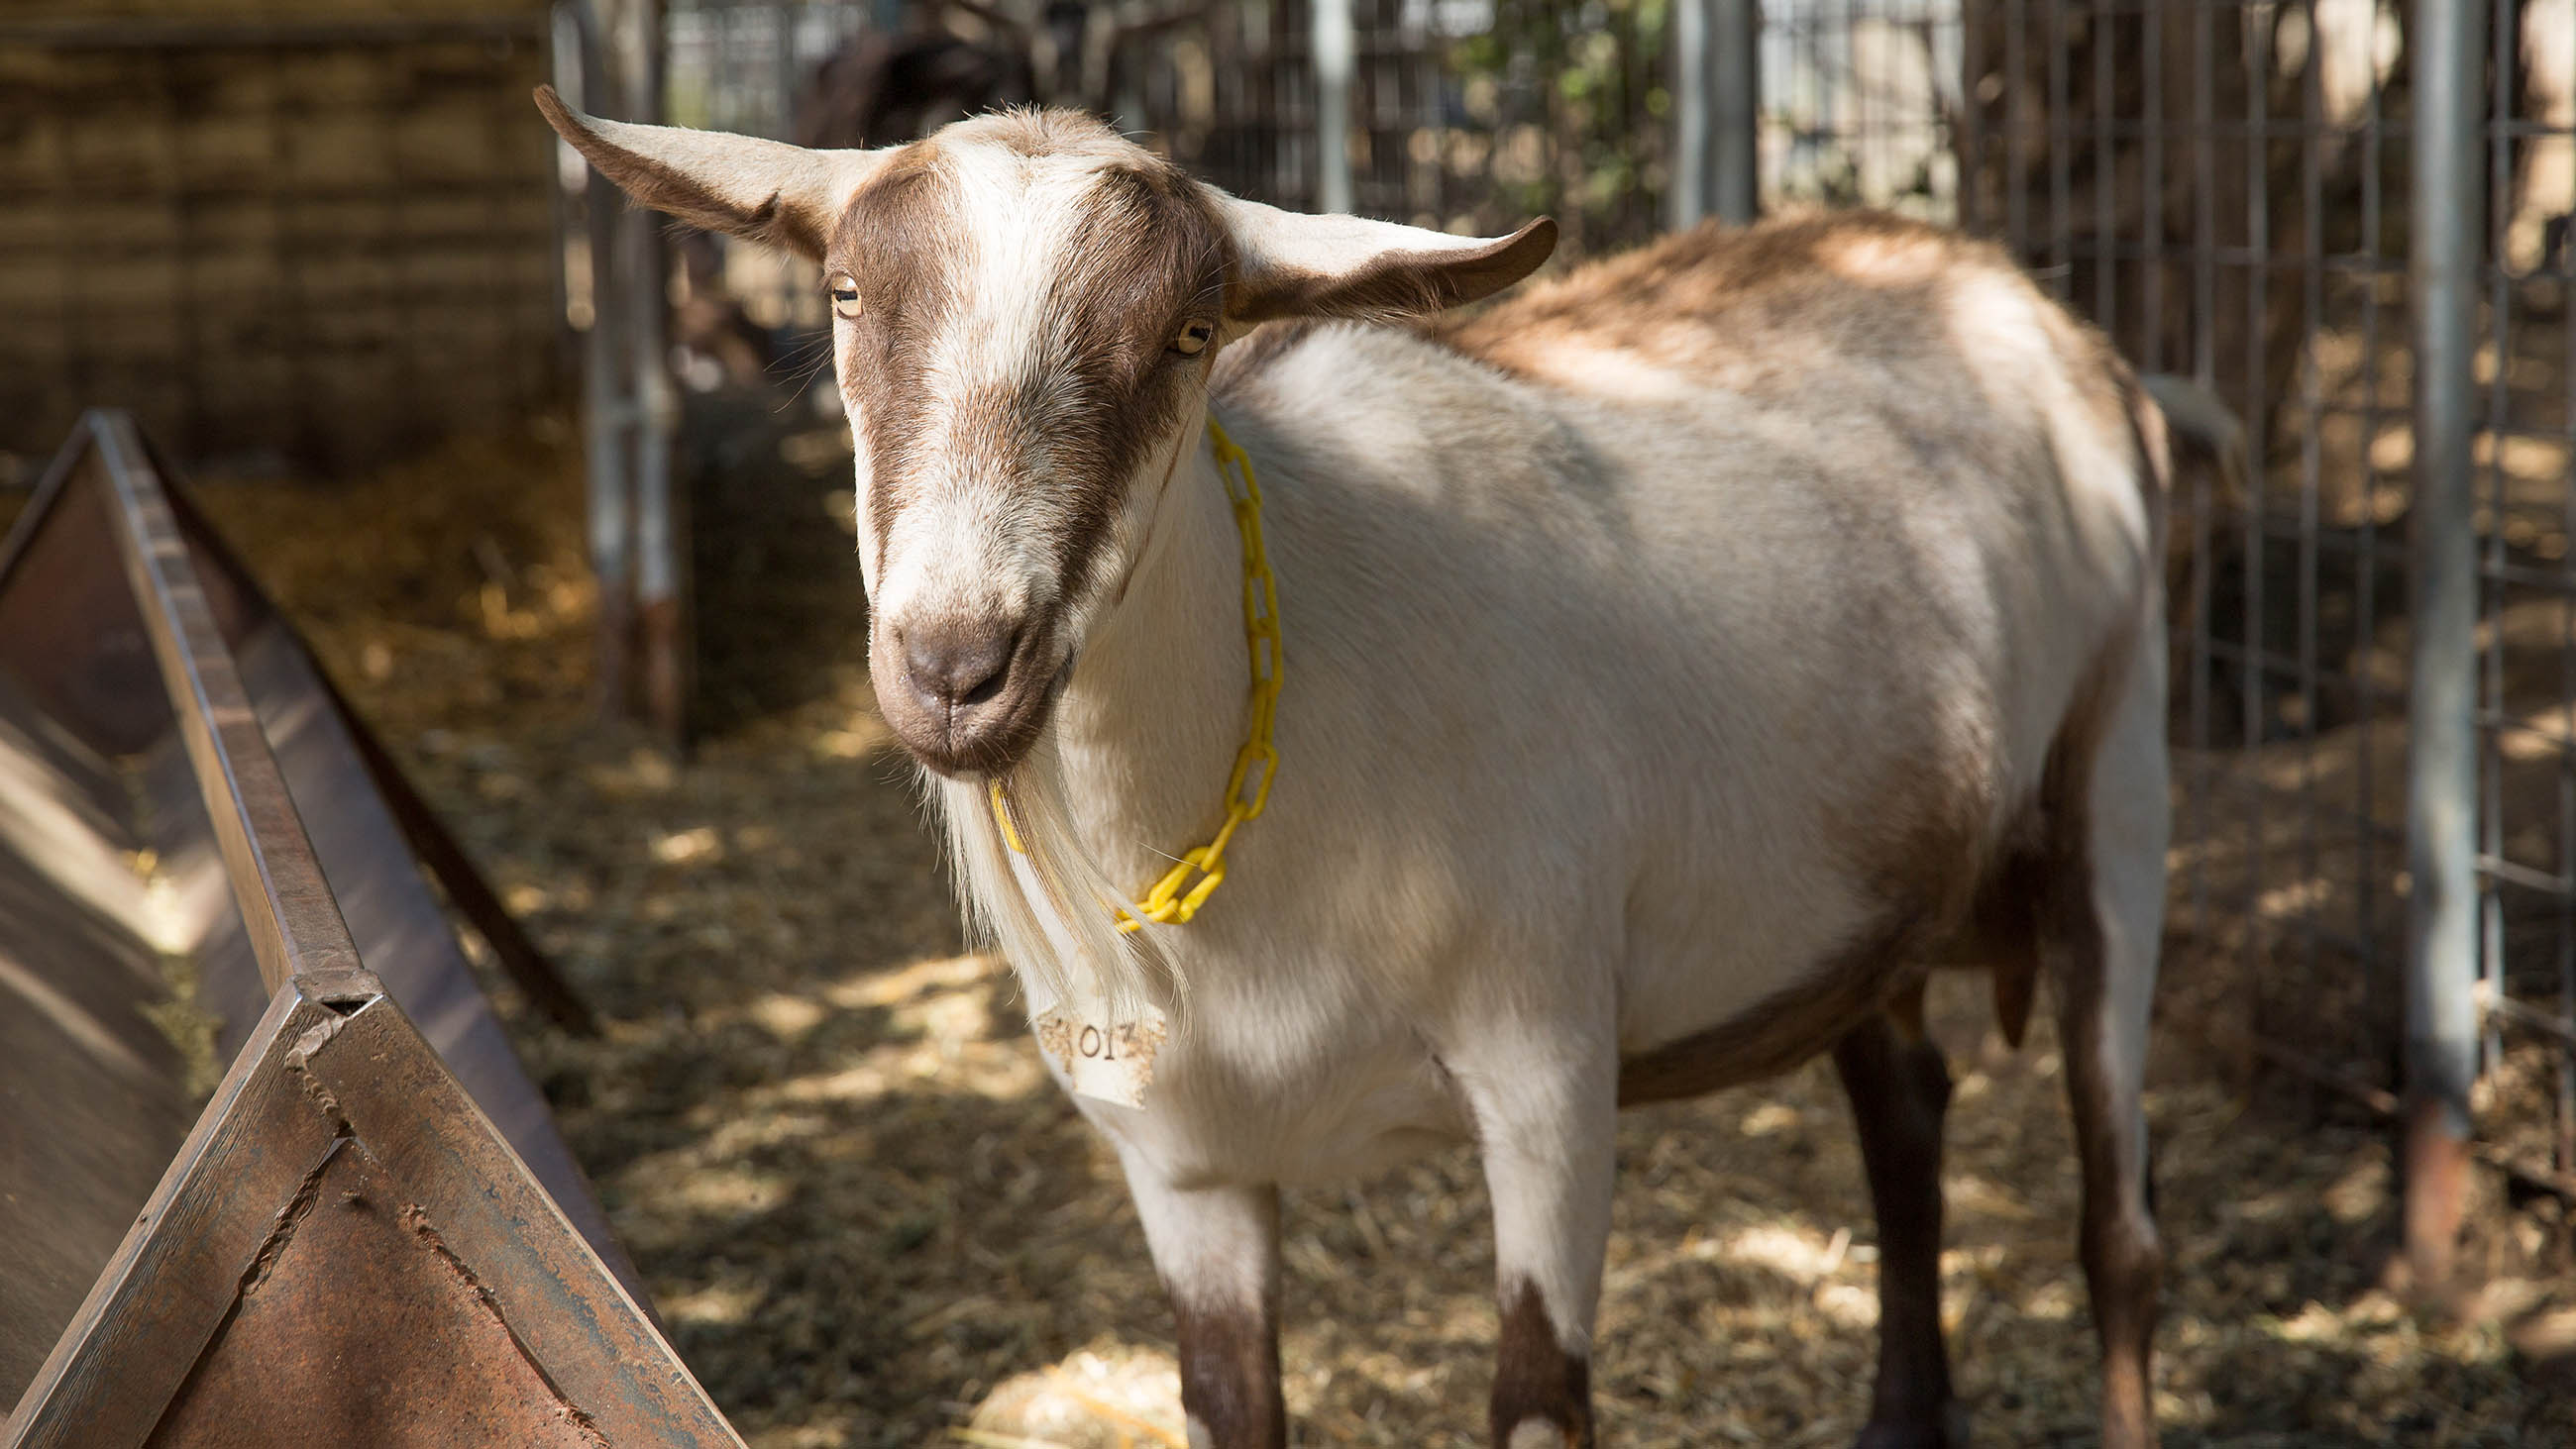 These GMO Goats Could Save Lives. Fear and Confusion Prevent It.